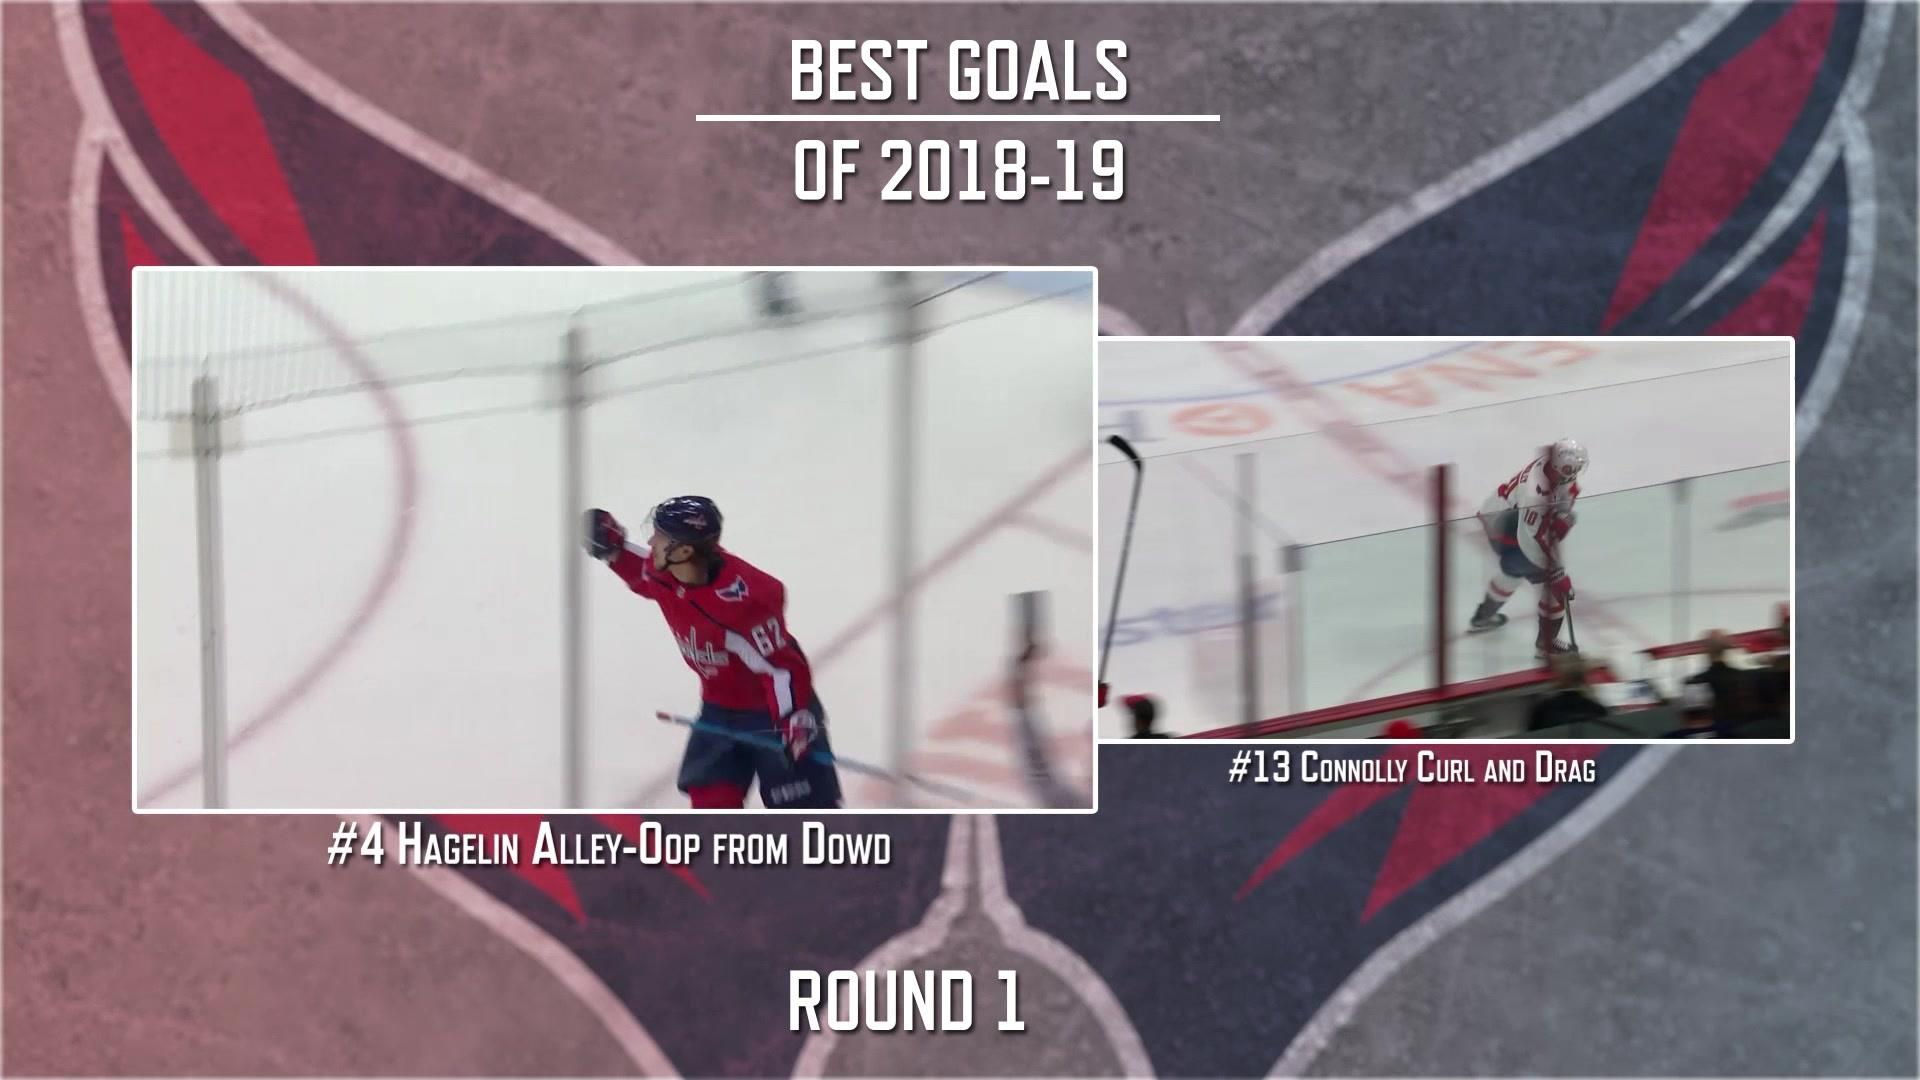 Capitals Goal of the Year: Hagelin's breakaway vs Connolly's curl and